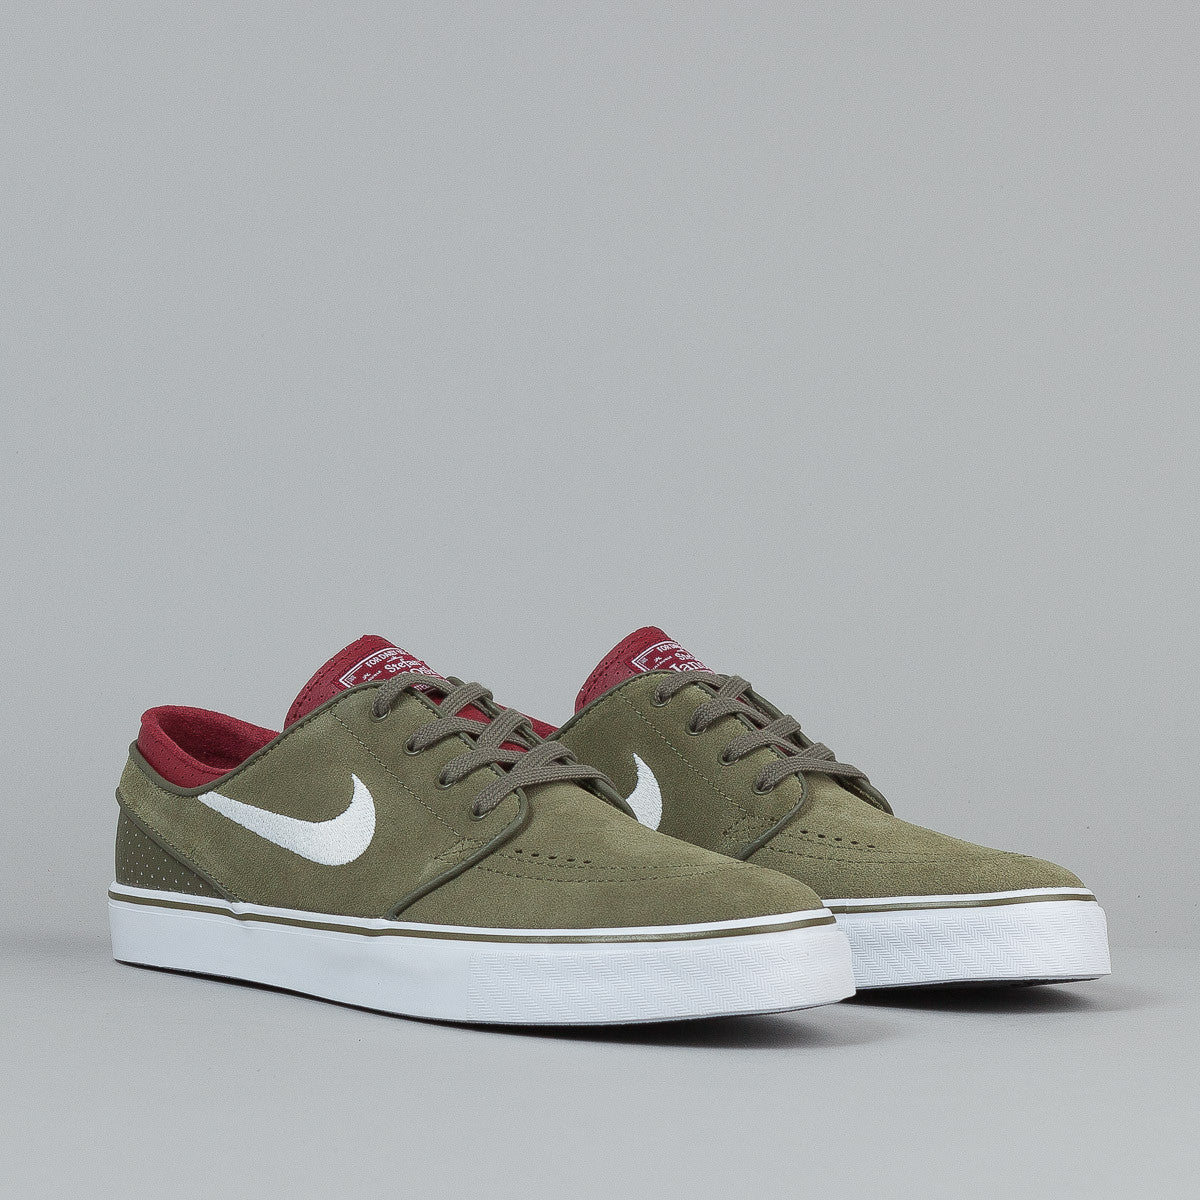 Nike SB Stefan Janoski Medium Olive / White - Team Red - Black